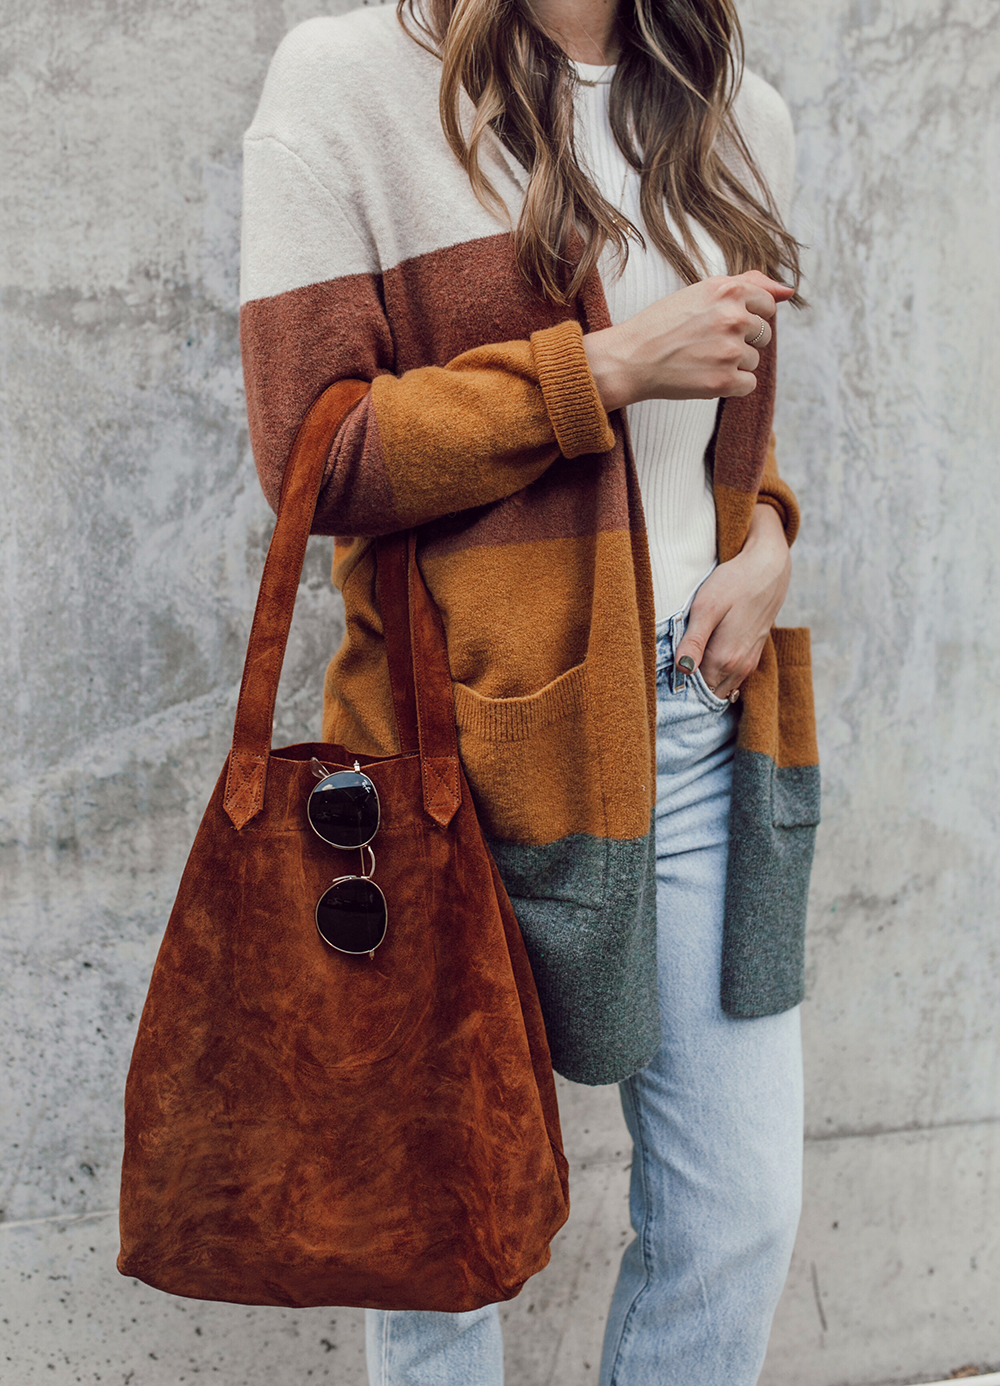 livvyland-blog-olivia-watson-austin-texas-fashion-lifestyle-blogger-nisolo-james-oxford-fall-outfit-idea-madewell-kent-cardigan-6